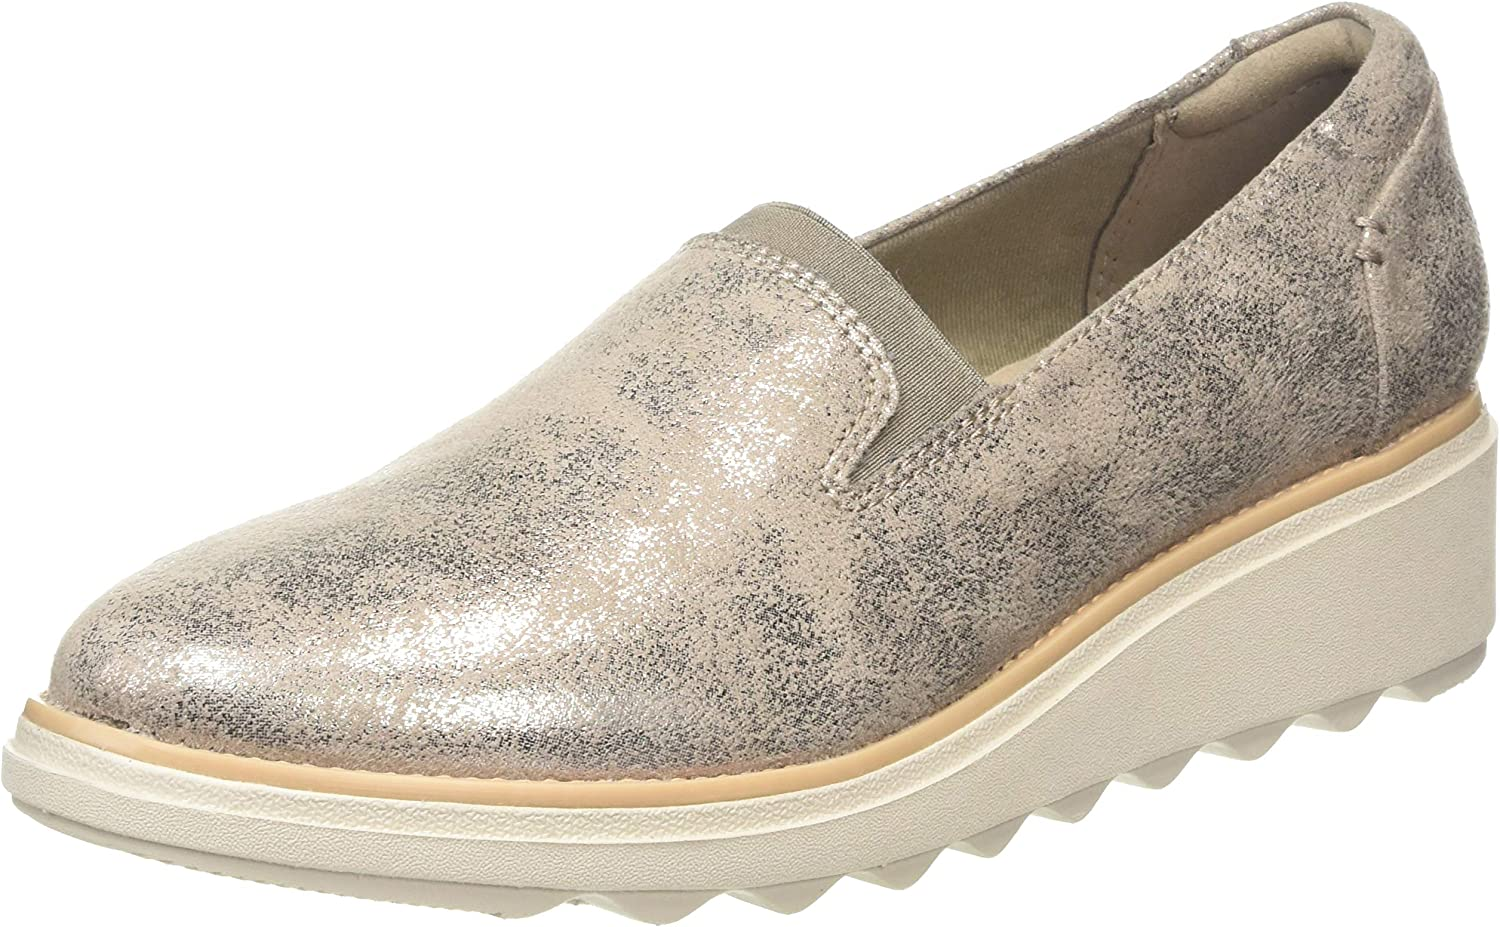 Save money Clarks Women's Max 71% OFF Loafers